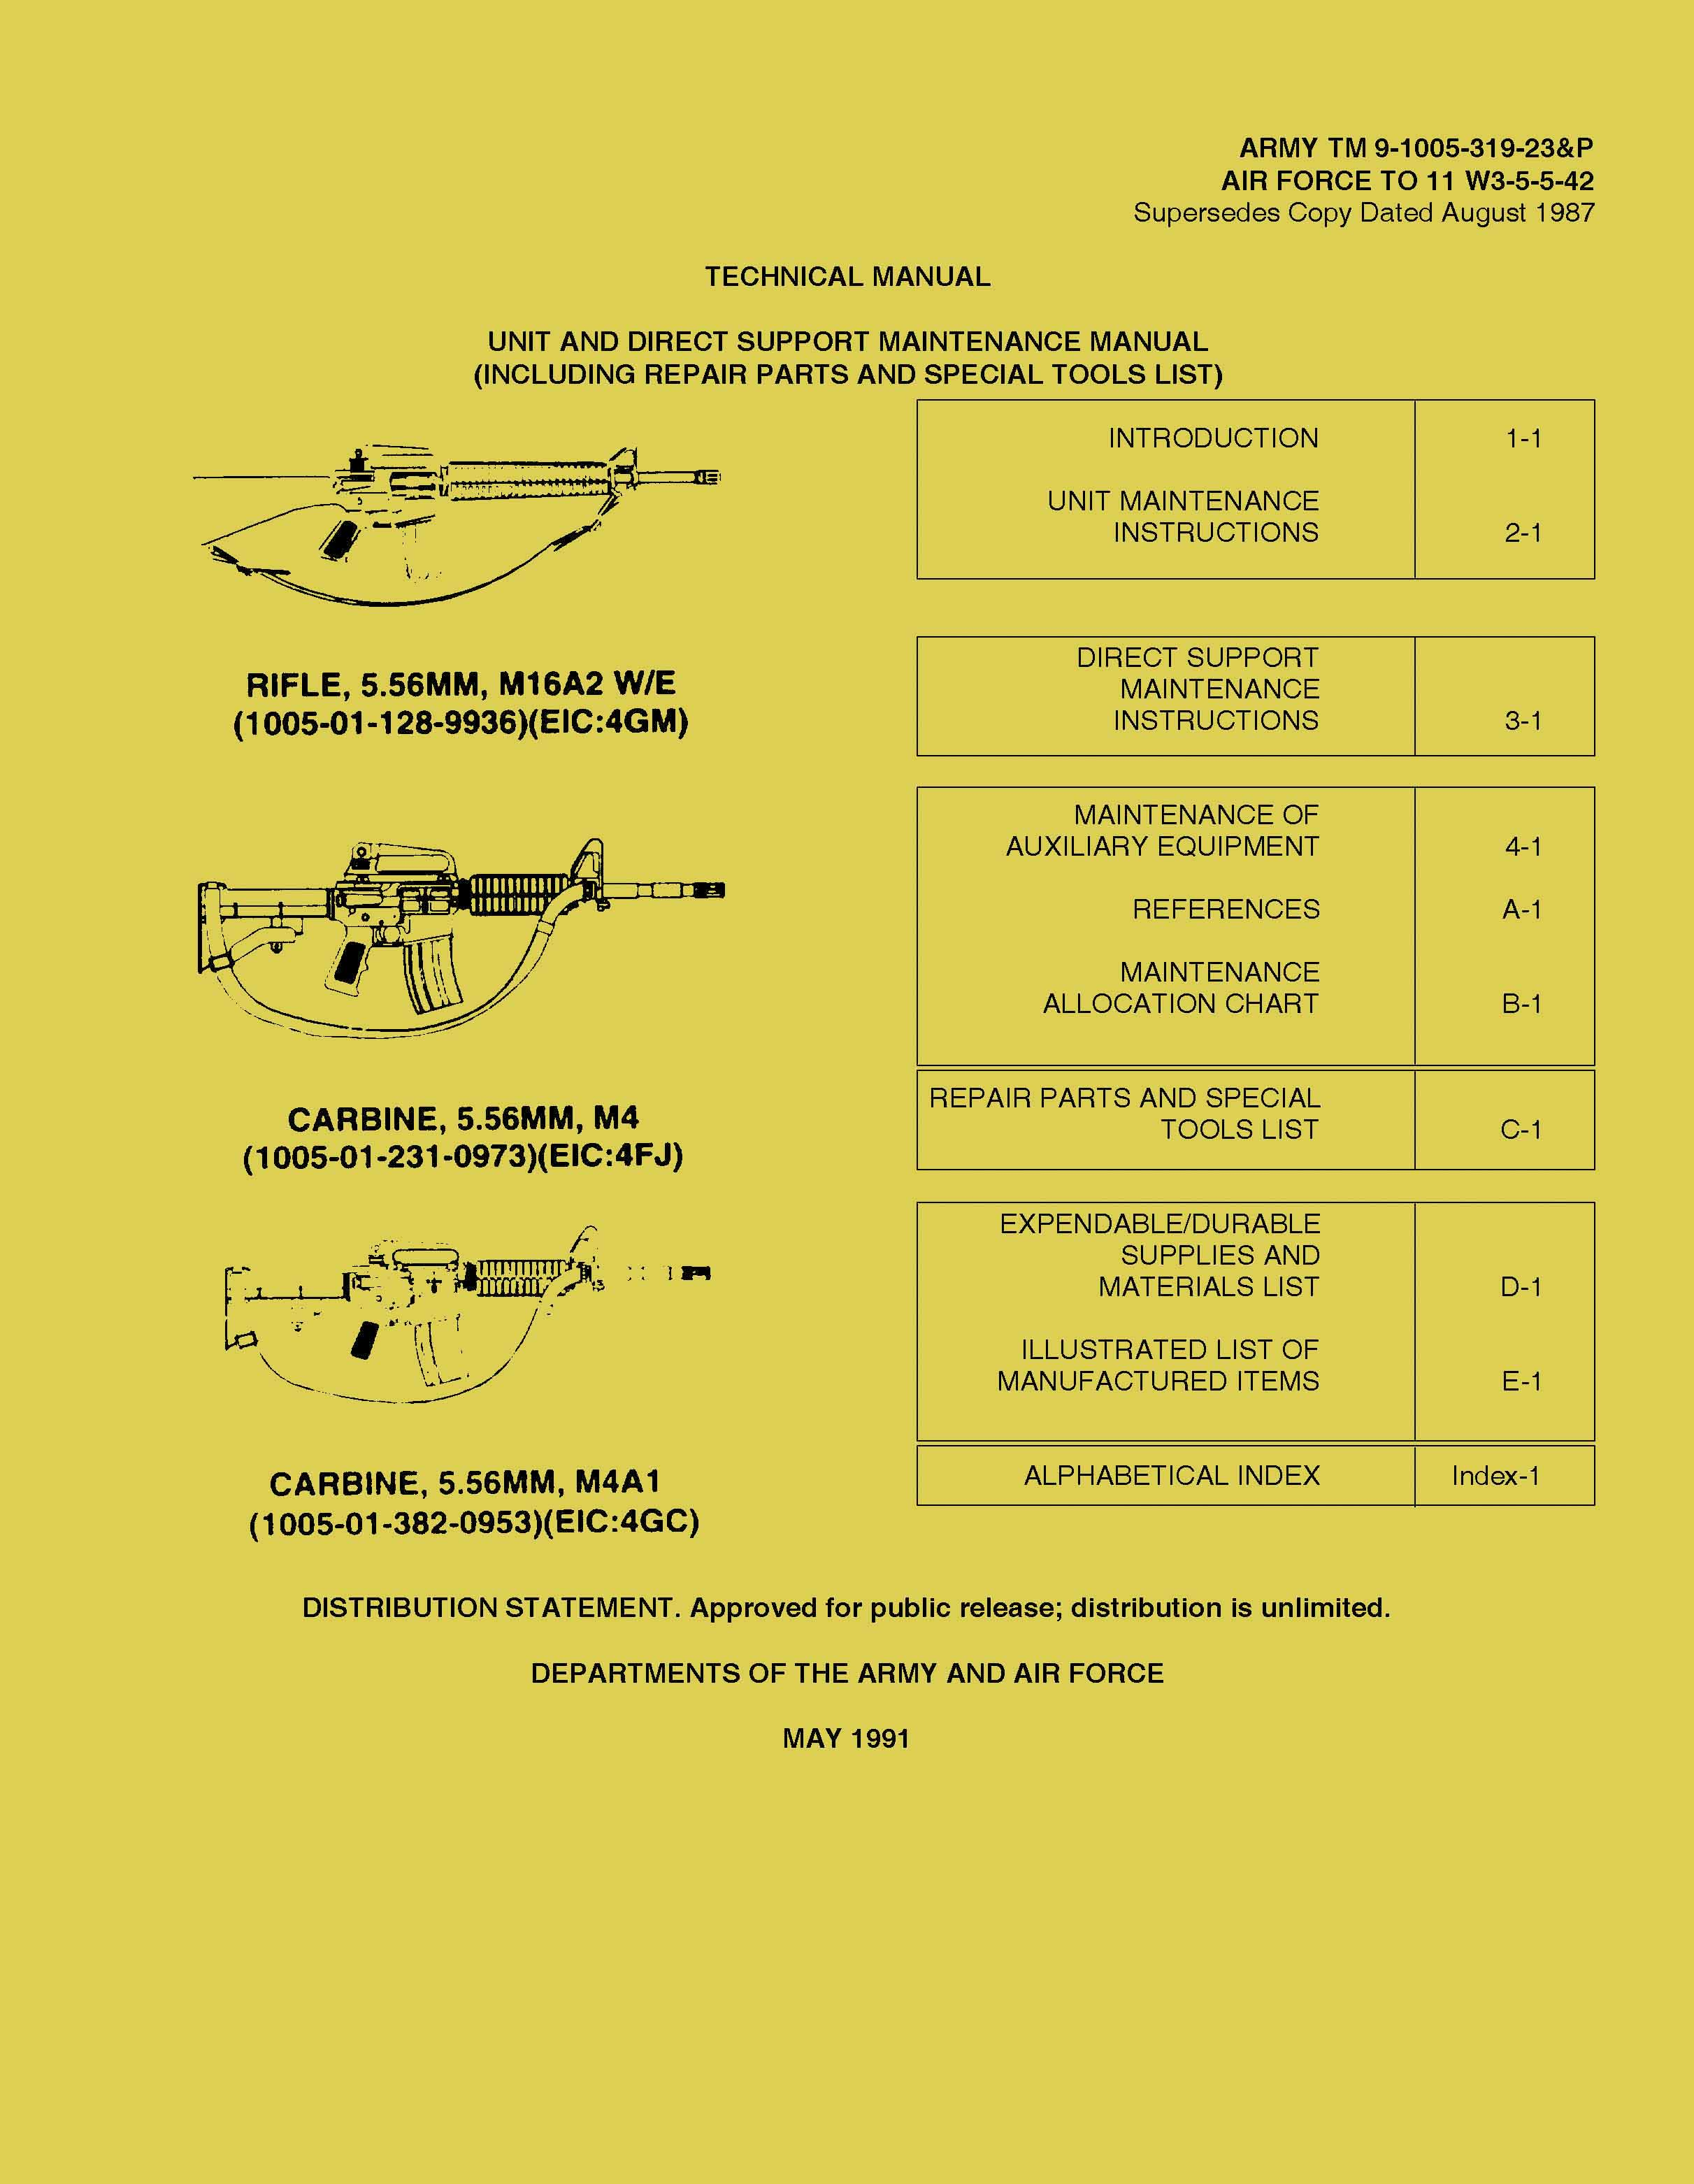 M-16 US Army manual M16A2 W/E and Carbine Technical manual